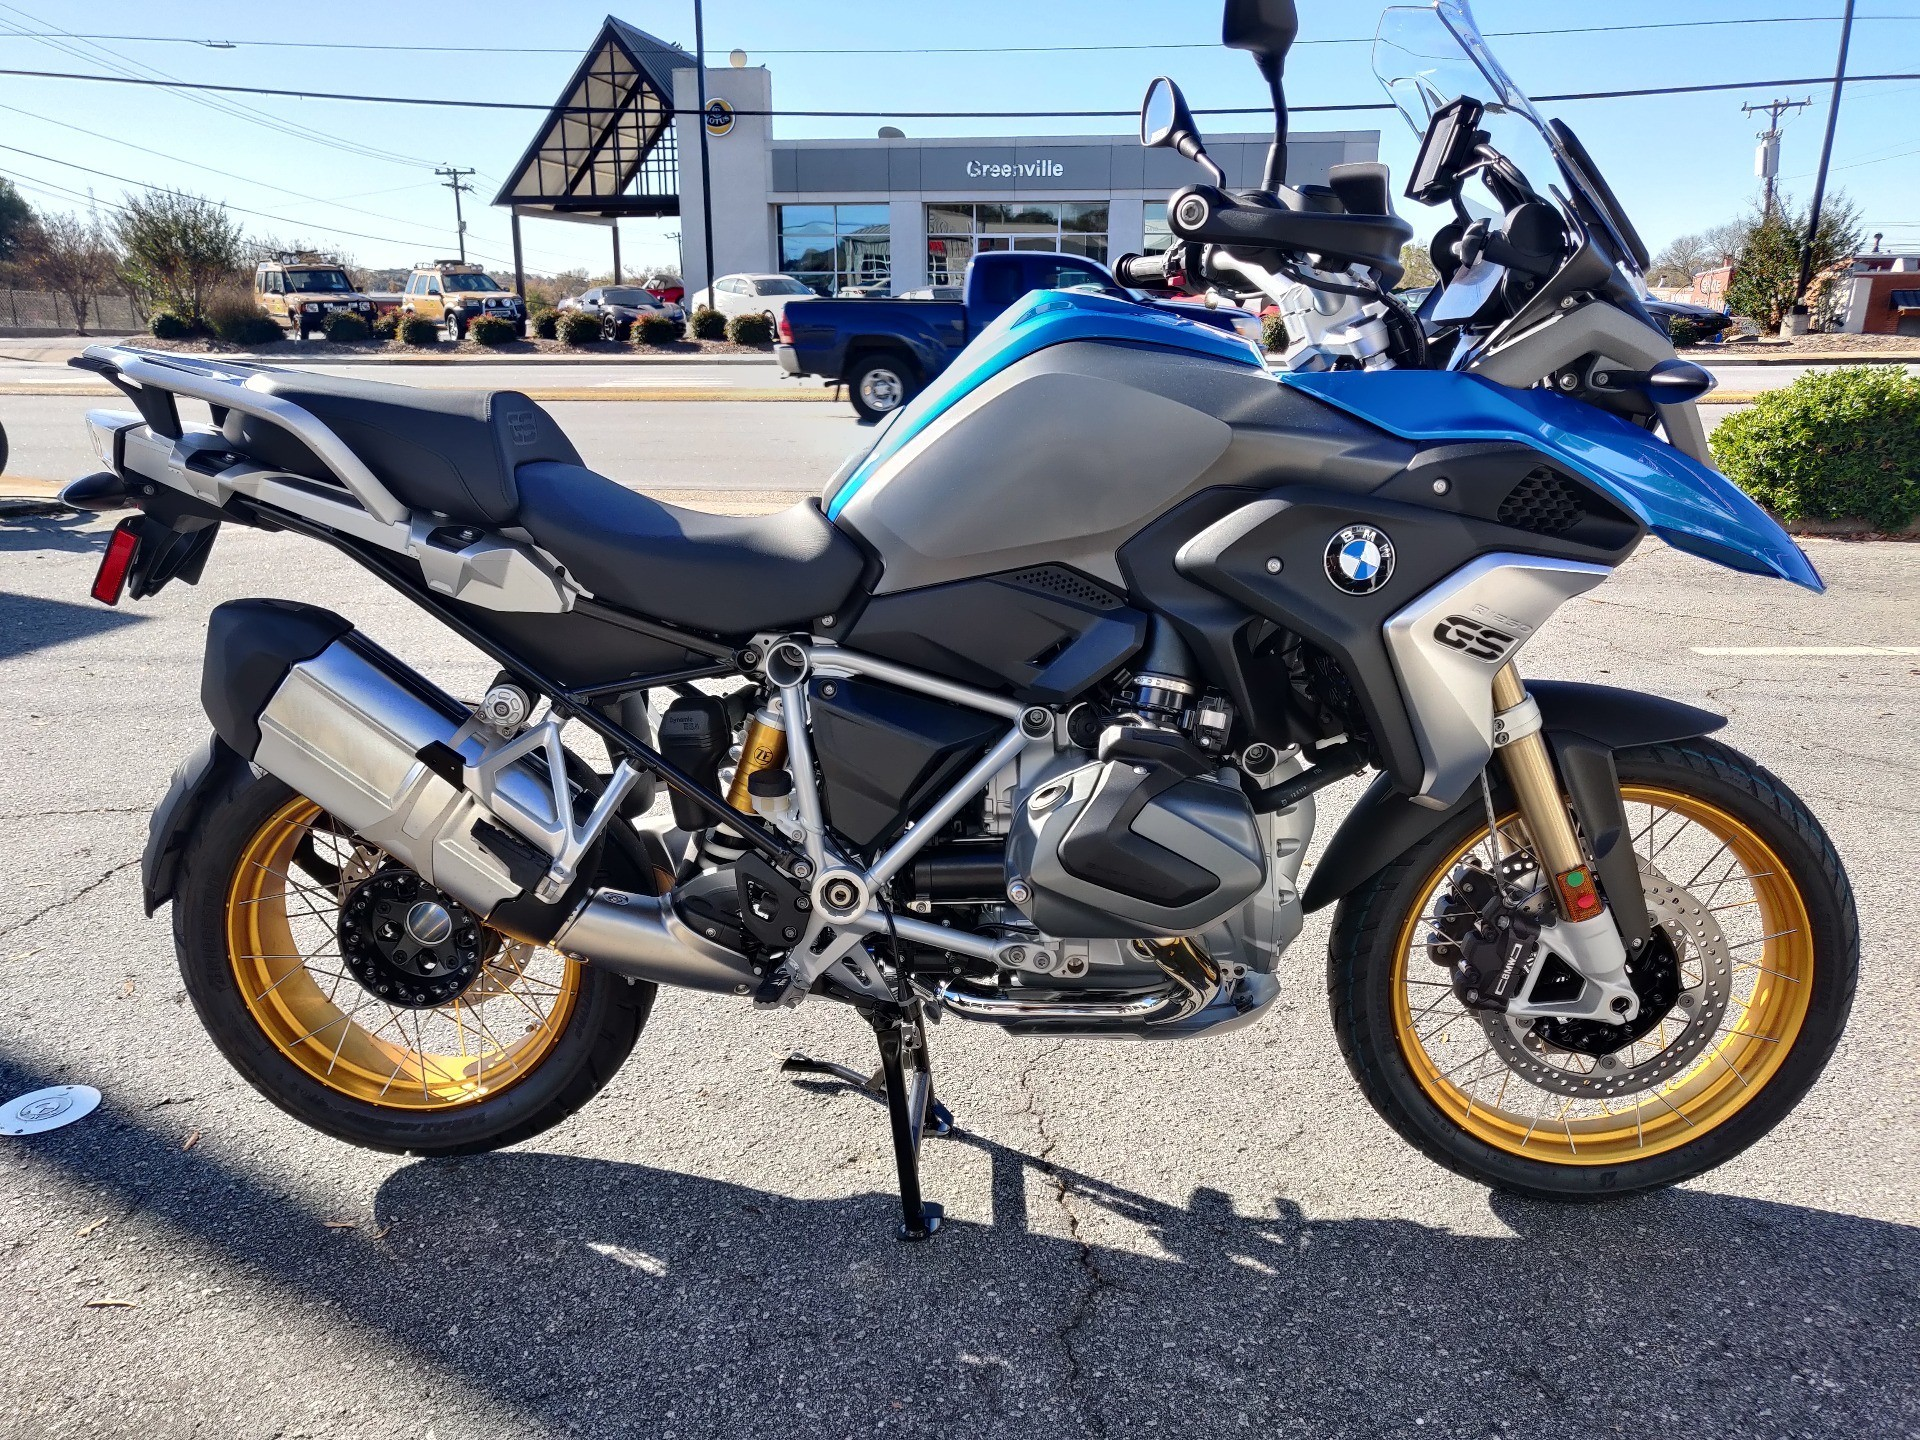 2020 BMW R 1250 GS in Greenville, South Carolina - Photo 4